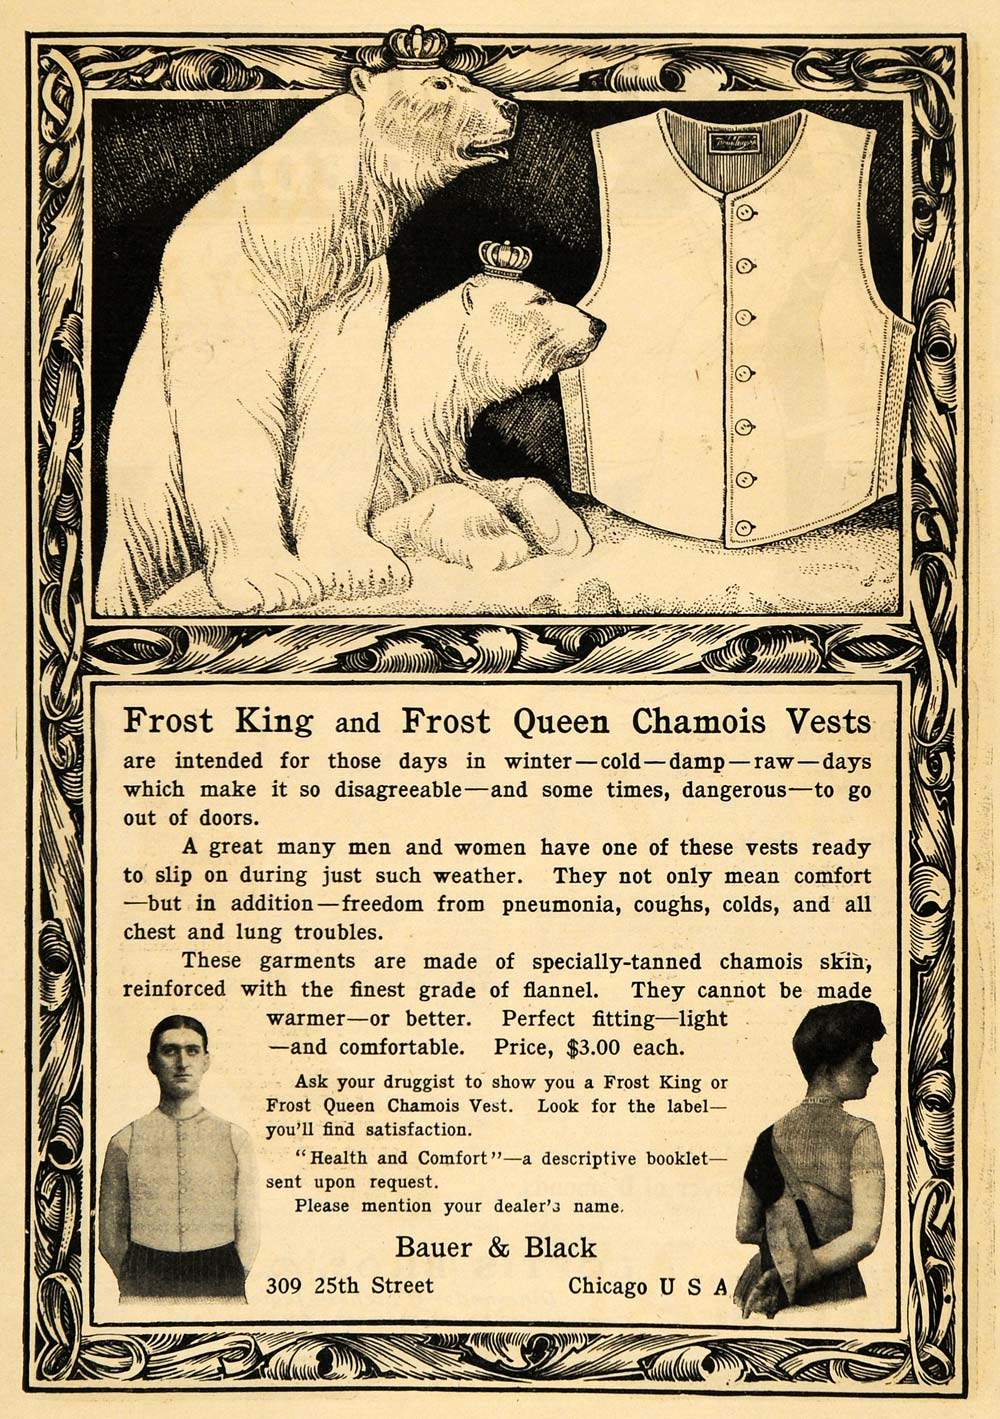 1903 Ad Bauer Black Frost King Queen Chamois Vest Polar Bears Clothing ARG1